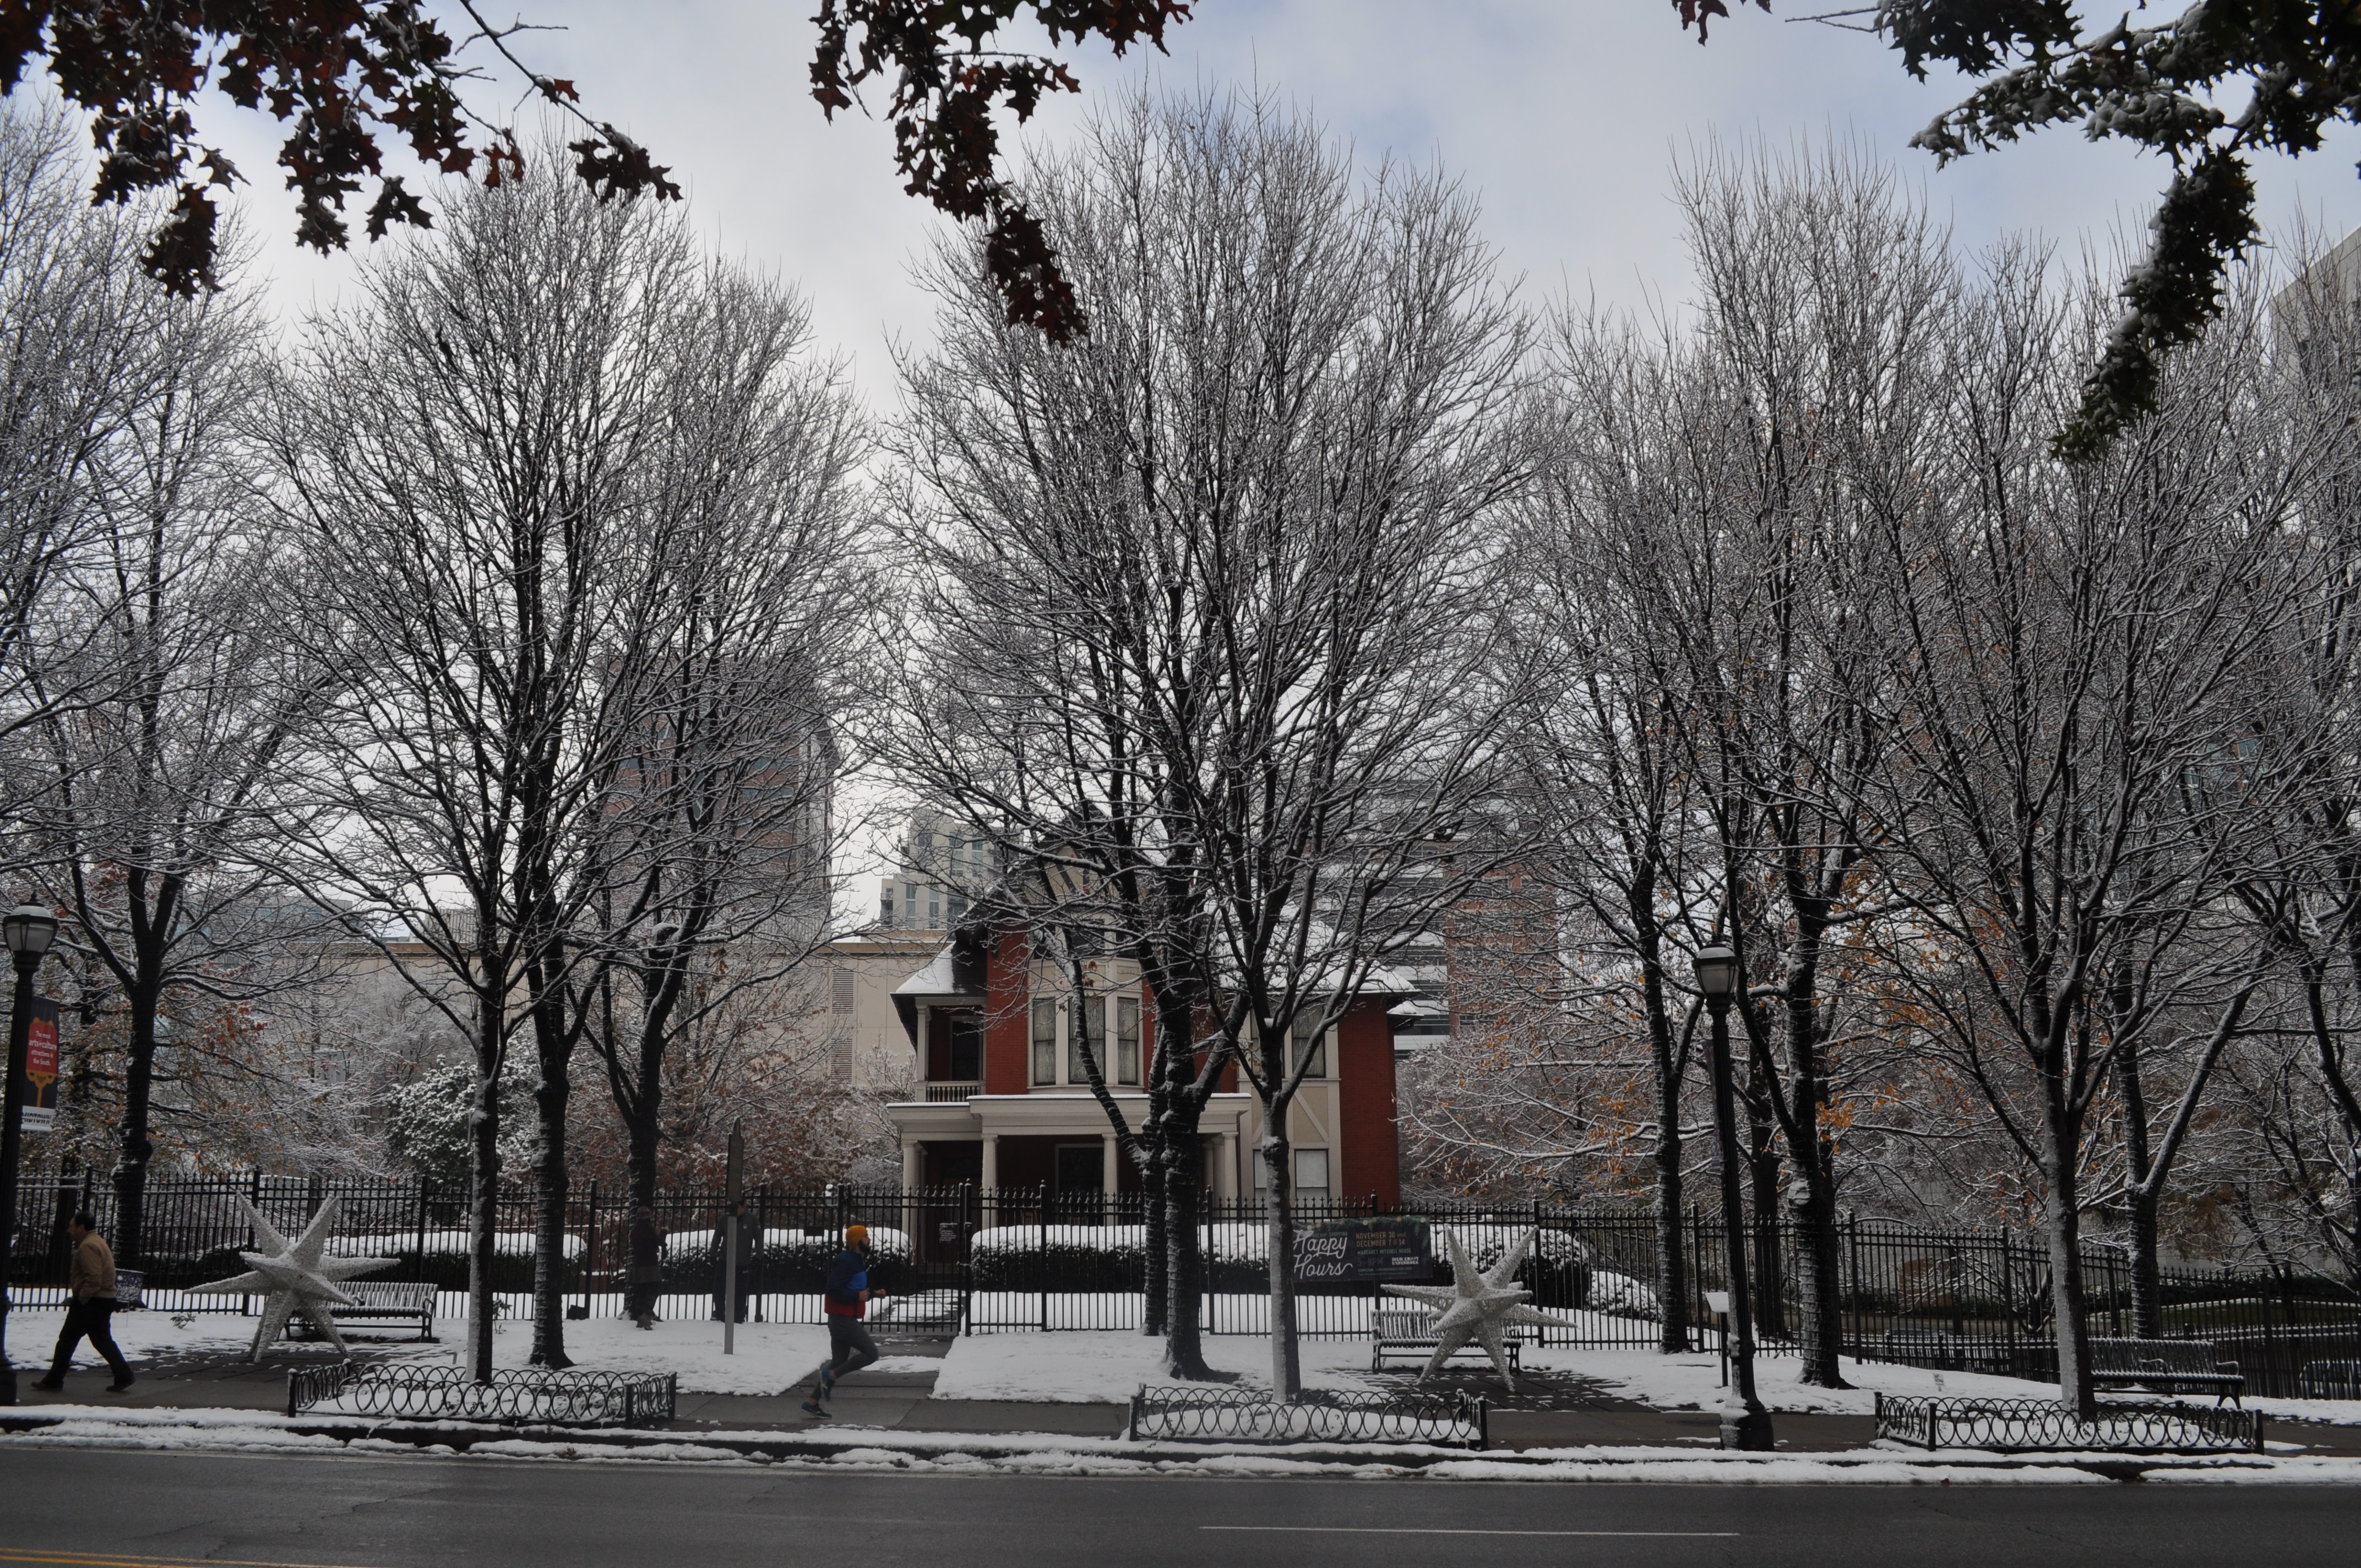 The old Colonial-style home and its lawn are coated in snow.